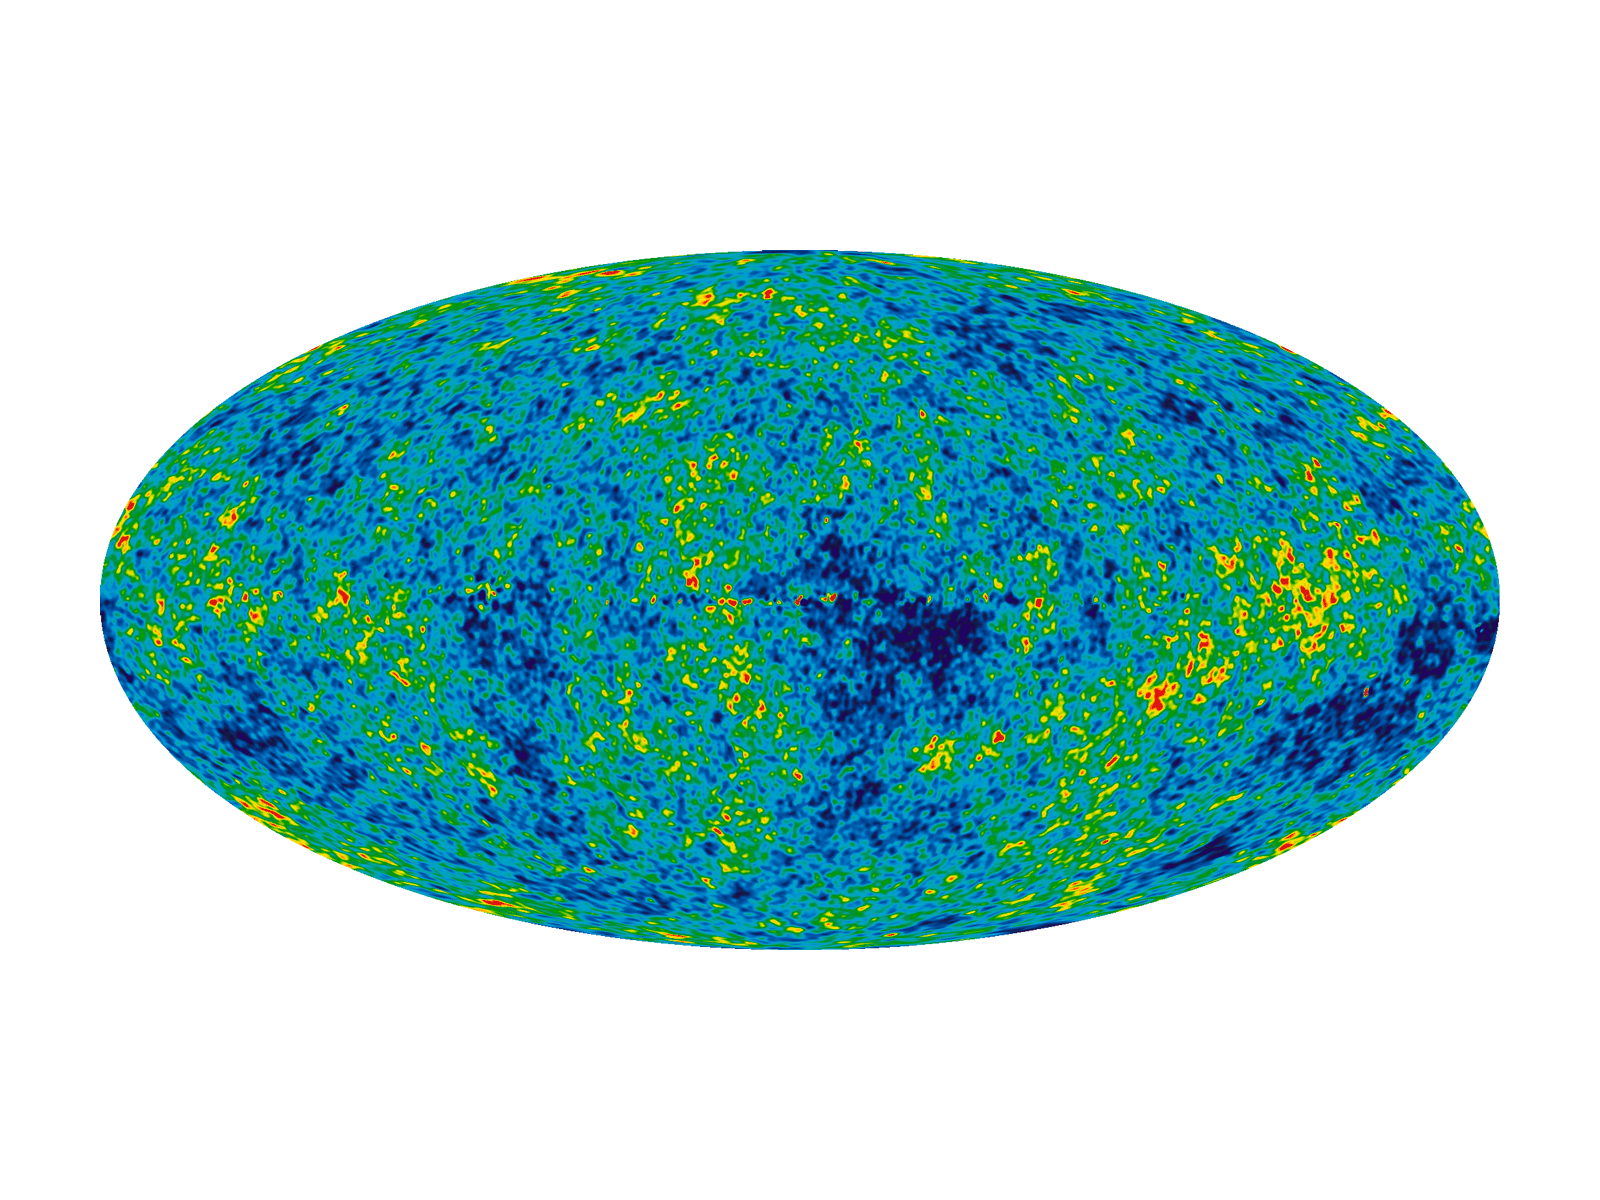 WMAP ILC Seven Year sky map